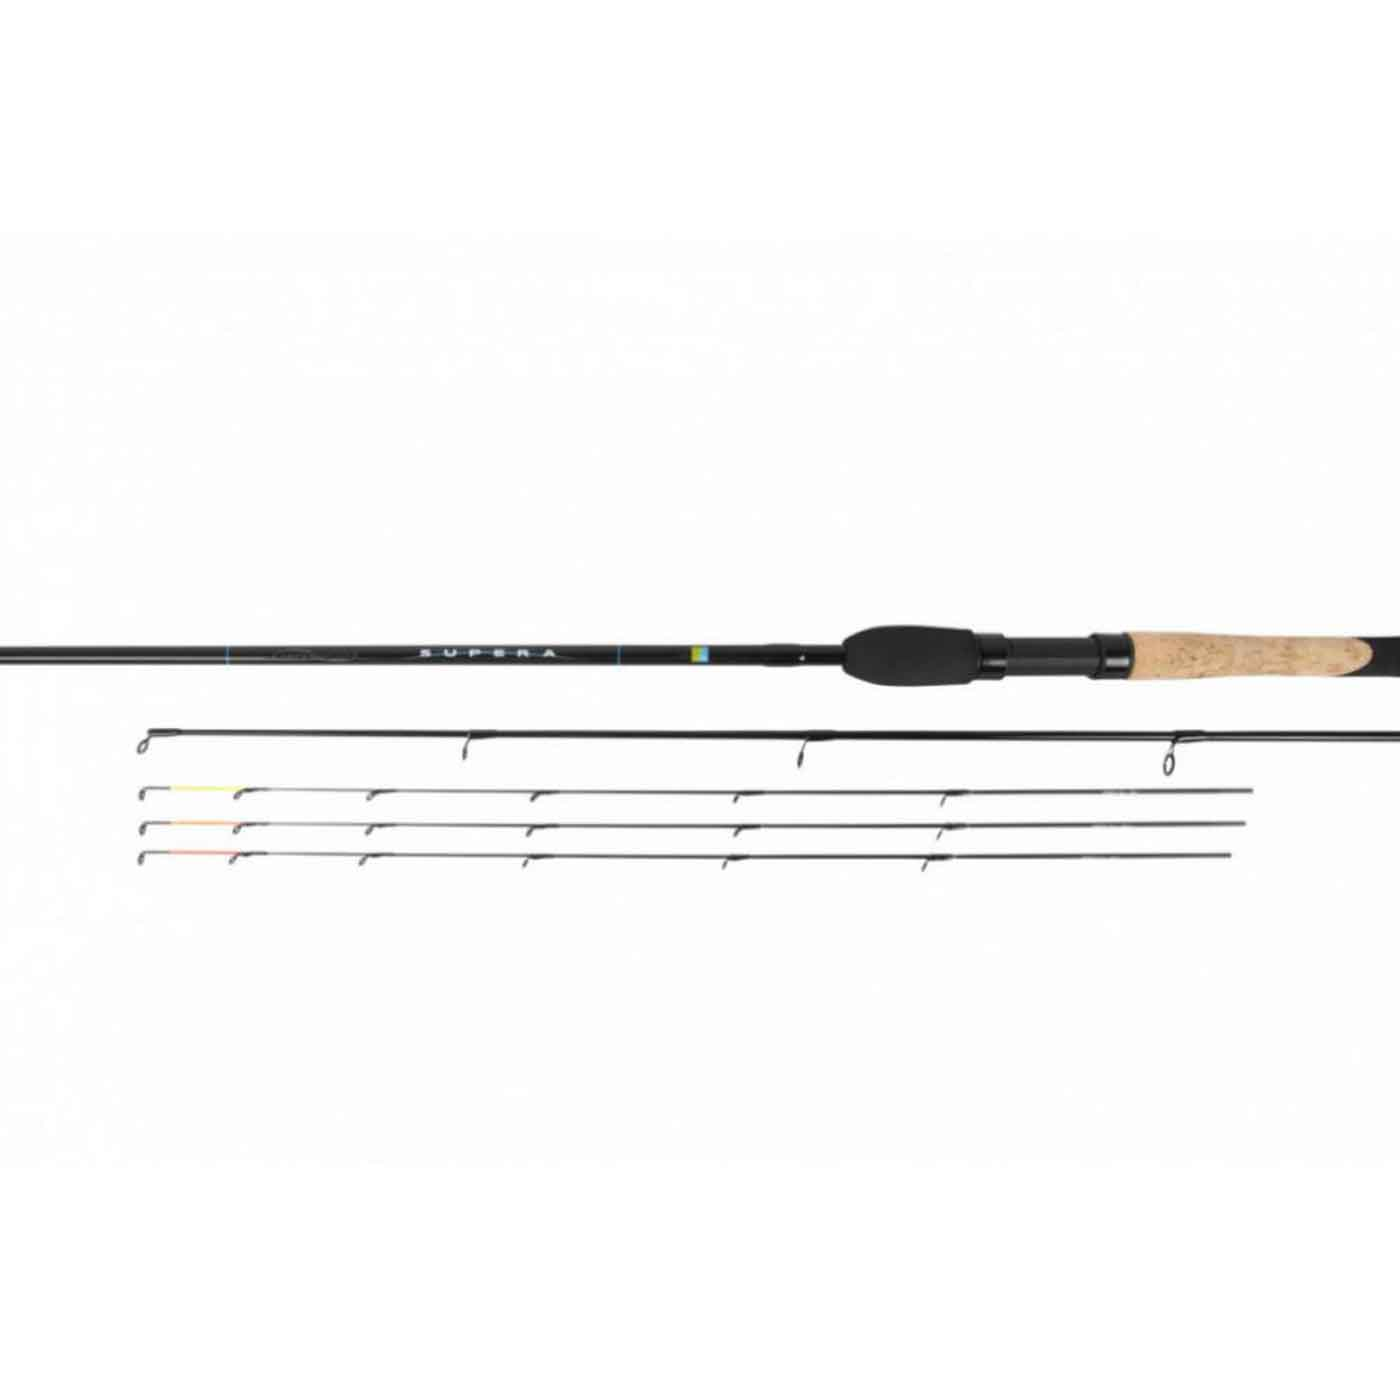 Preston Innovations Carboactive Supera 11ft 6in Feeder Rod